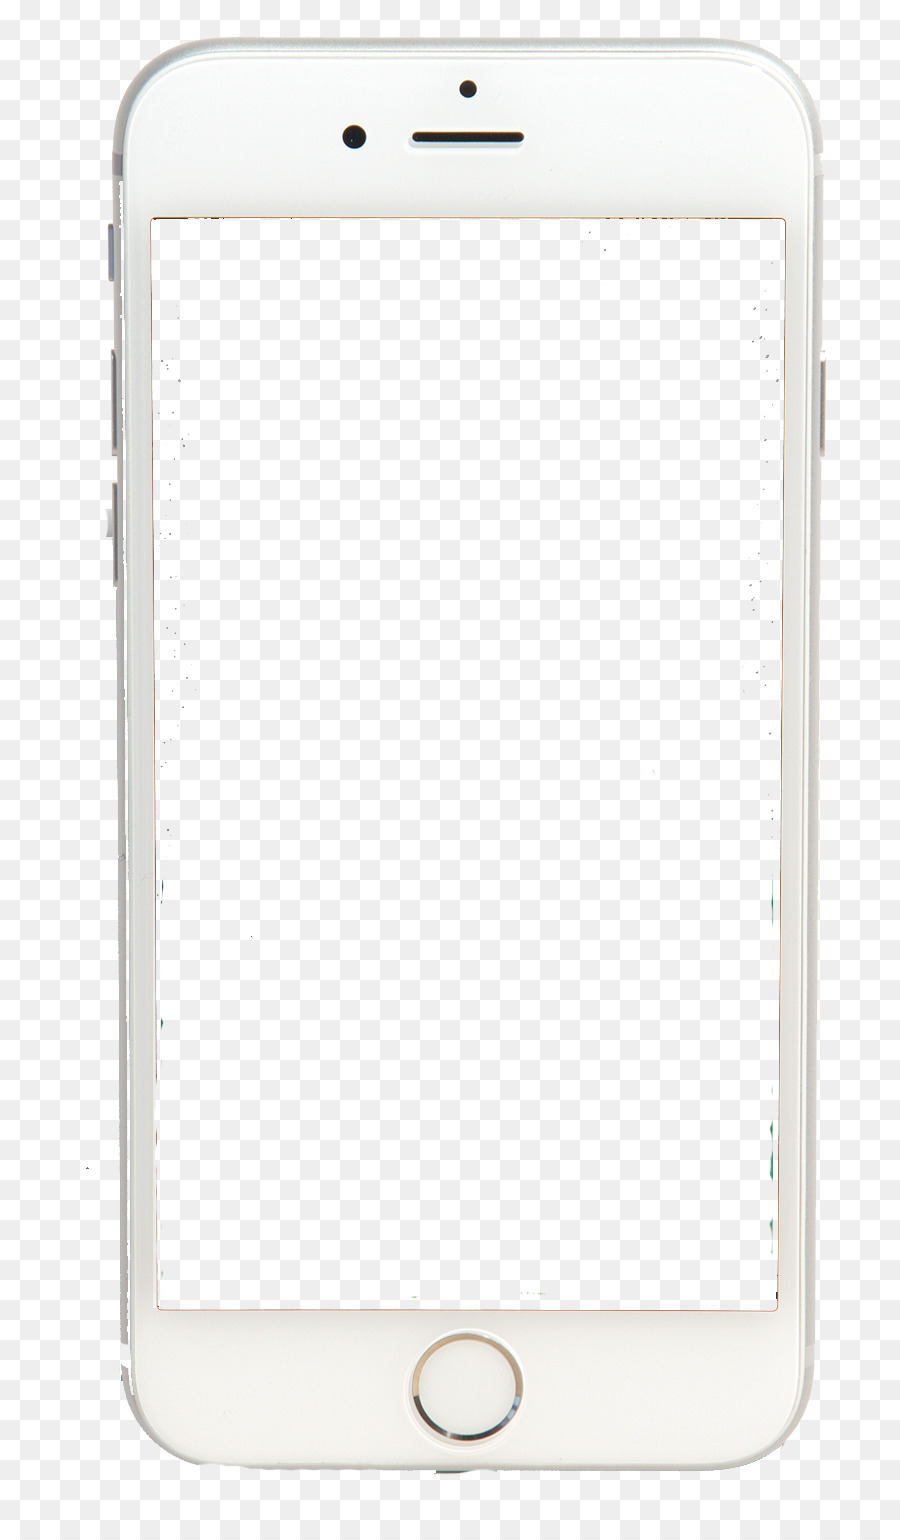 Iphone clipart blank iphone, Picture #2852373 iphone clipart.